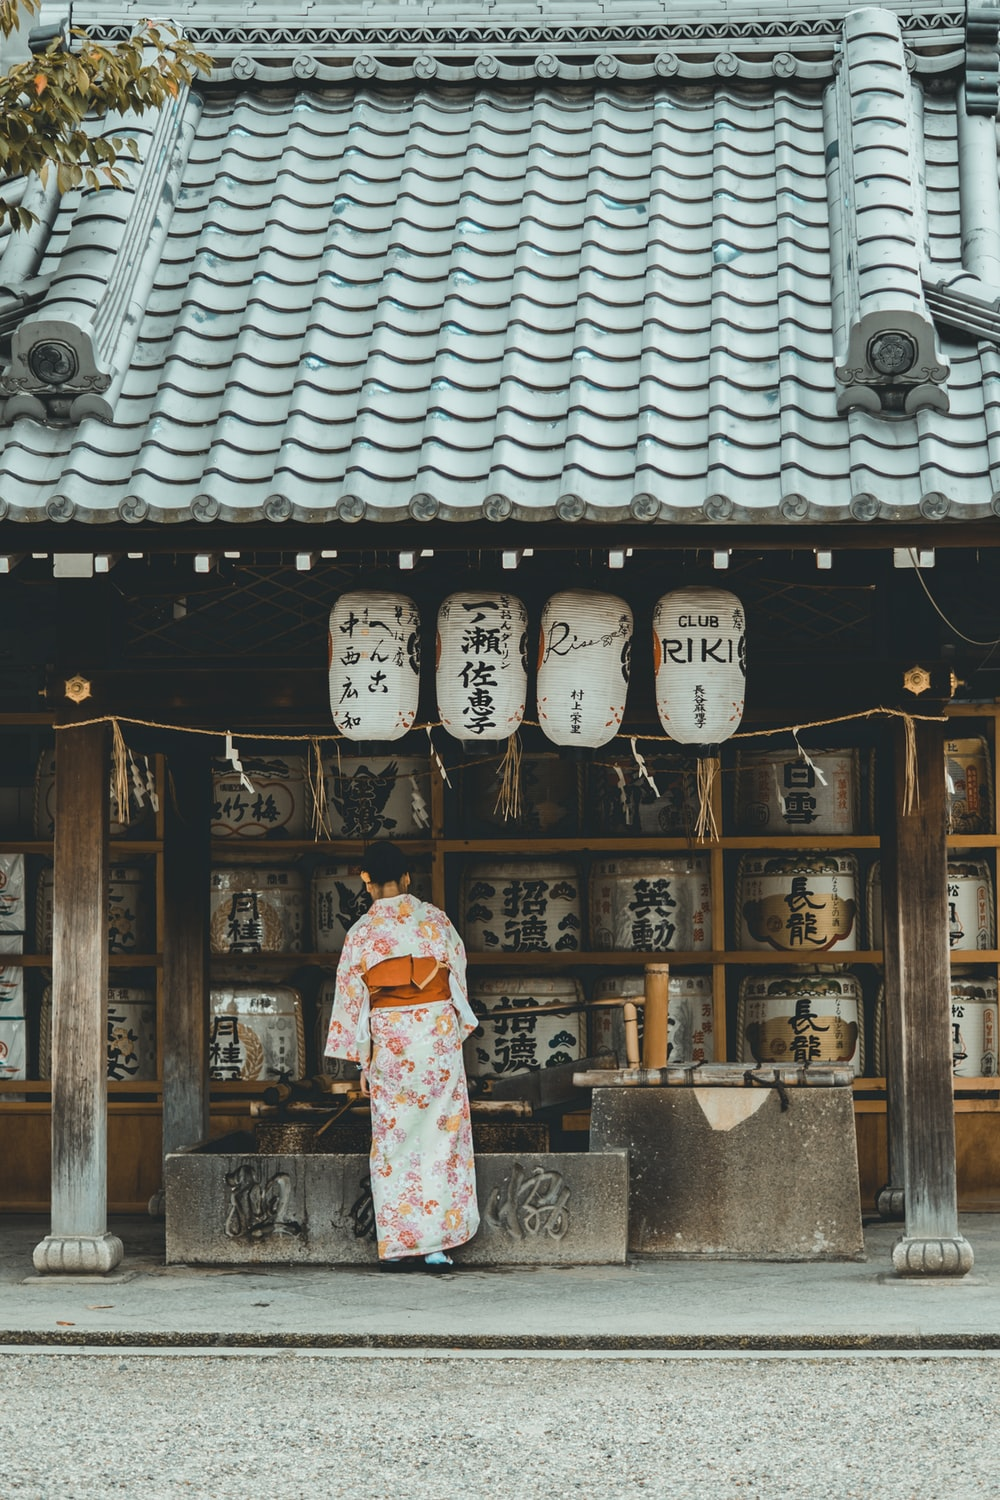 woman wearing orange and white kimono dress standing near the house